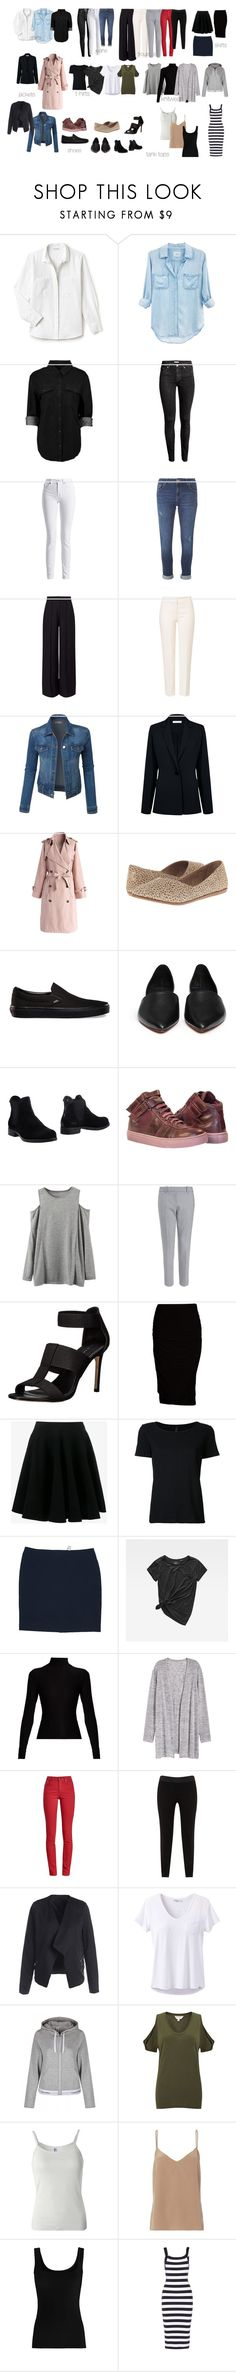 """My basic wardrobe"" by ladoreda ❤ liked on Polyvore featuring Lacoste, Rails, Boohoo, H&M, Barbour International, Dorothy Perkins, Miss Selfridge, ESCADA, LE3NO and Atea Oceanie"